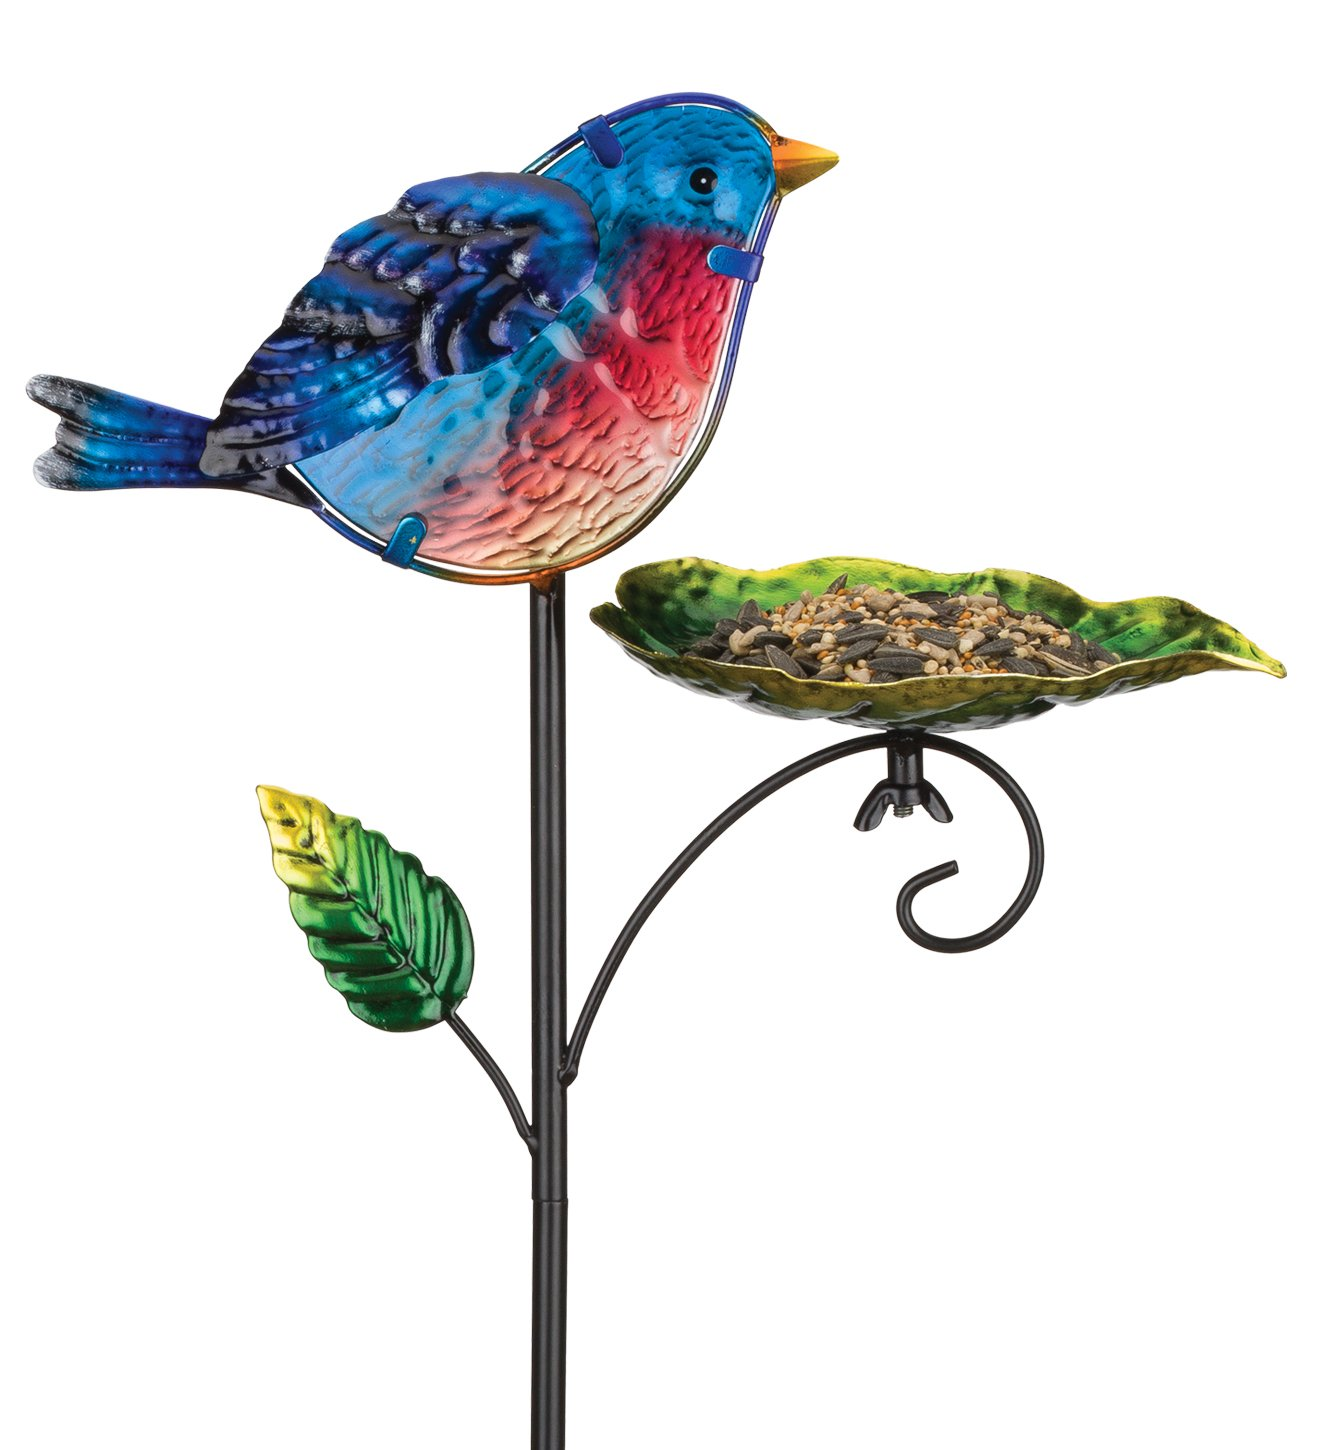 Regal Art & Gift 11 Inches X 6.30 Inches X 29.75 Inches Metal/Glass Bird Feeder Stake - Blue Bird